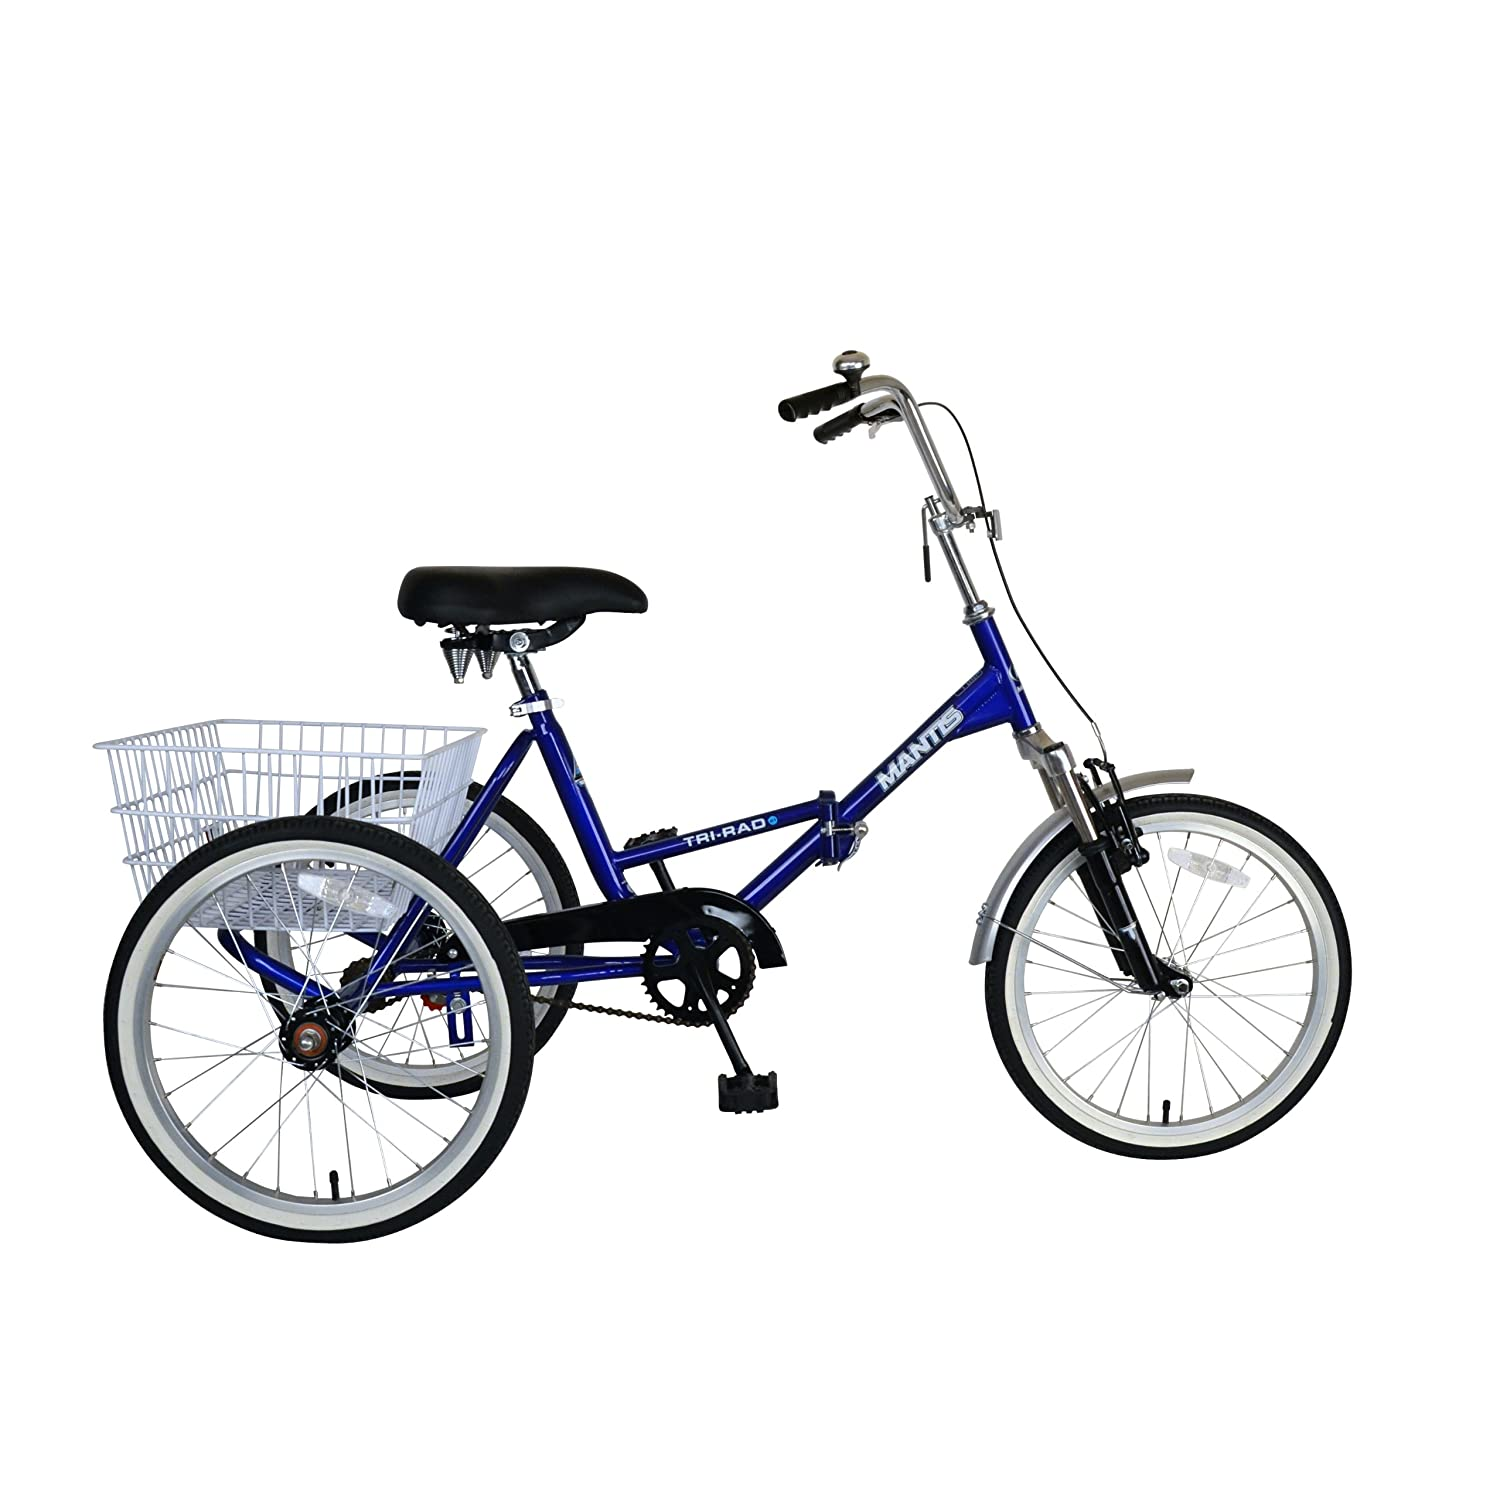 Amazon.com : Mantis 67520 Tri-Rad Folding Adult Tricycle, 20 inch ...